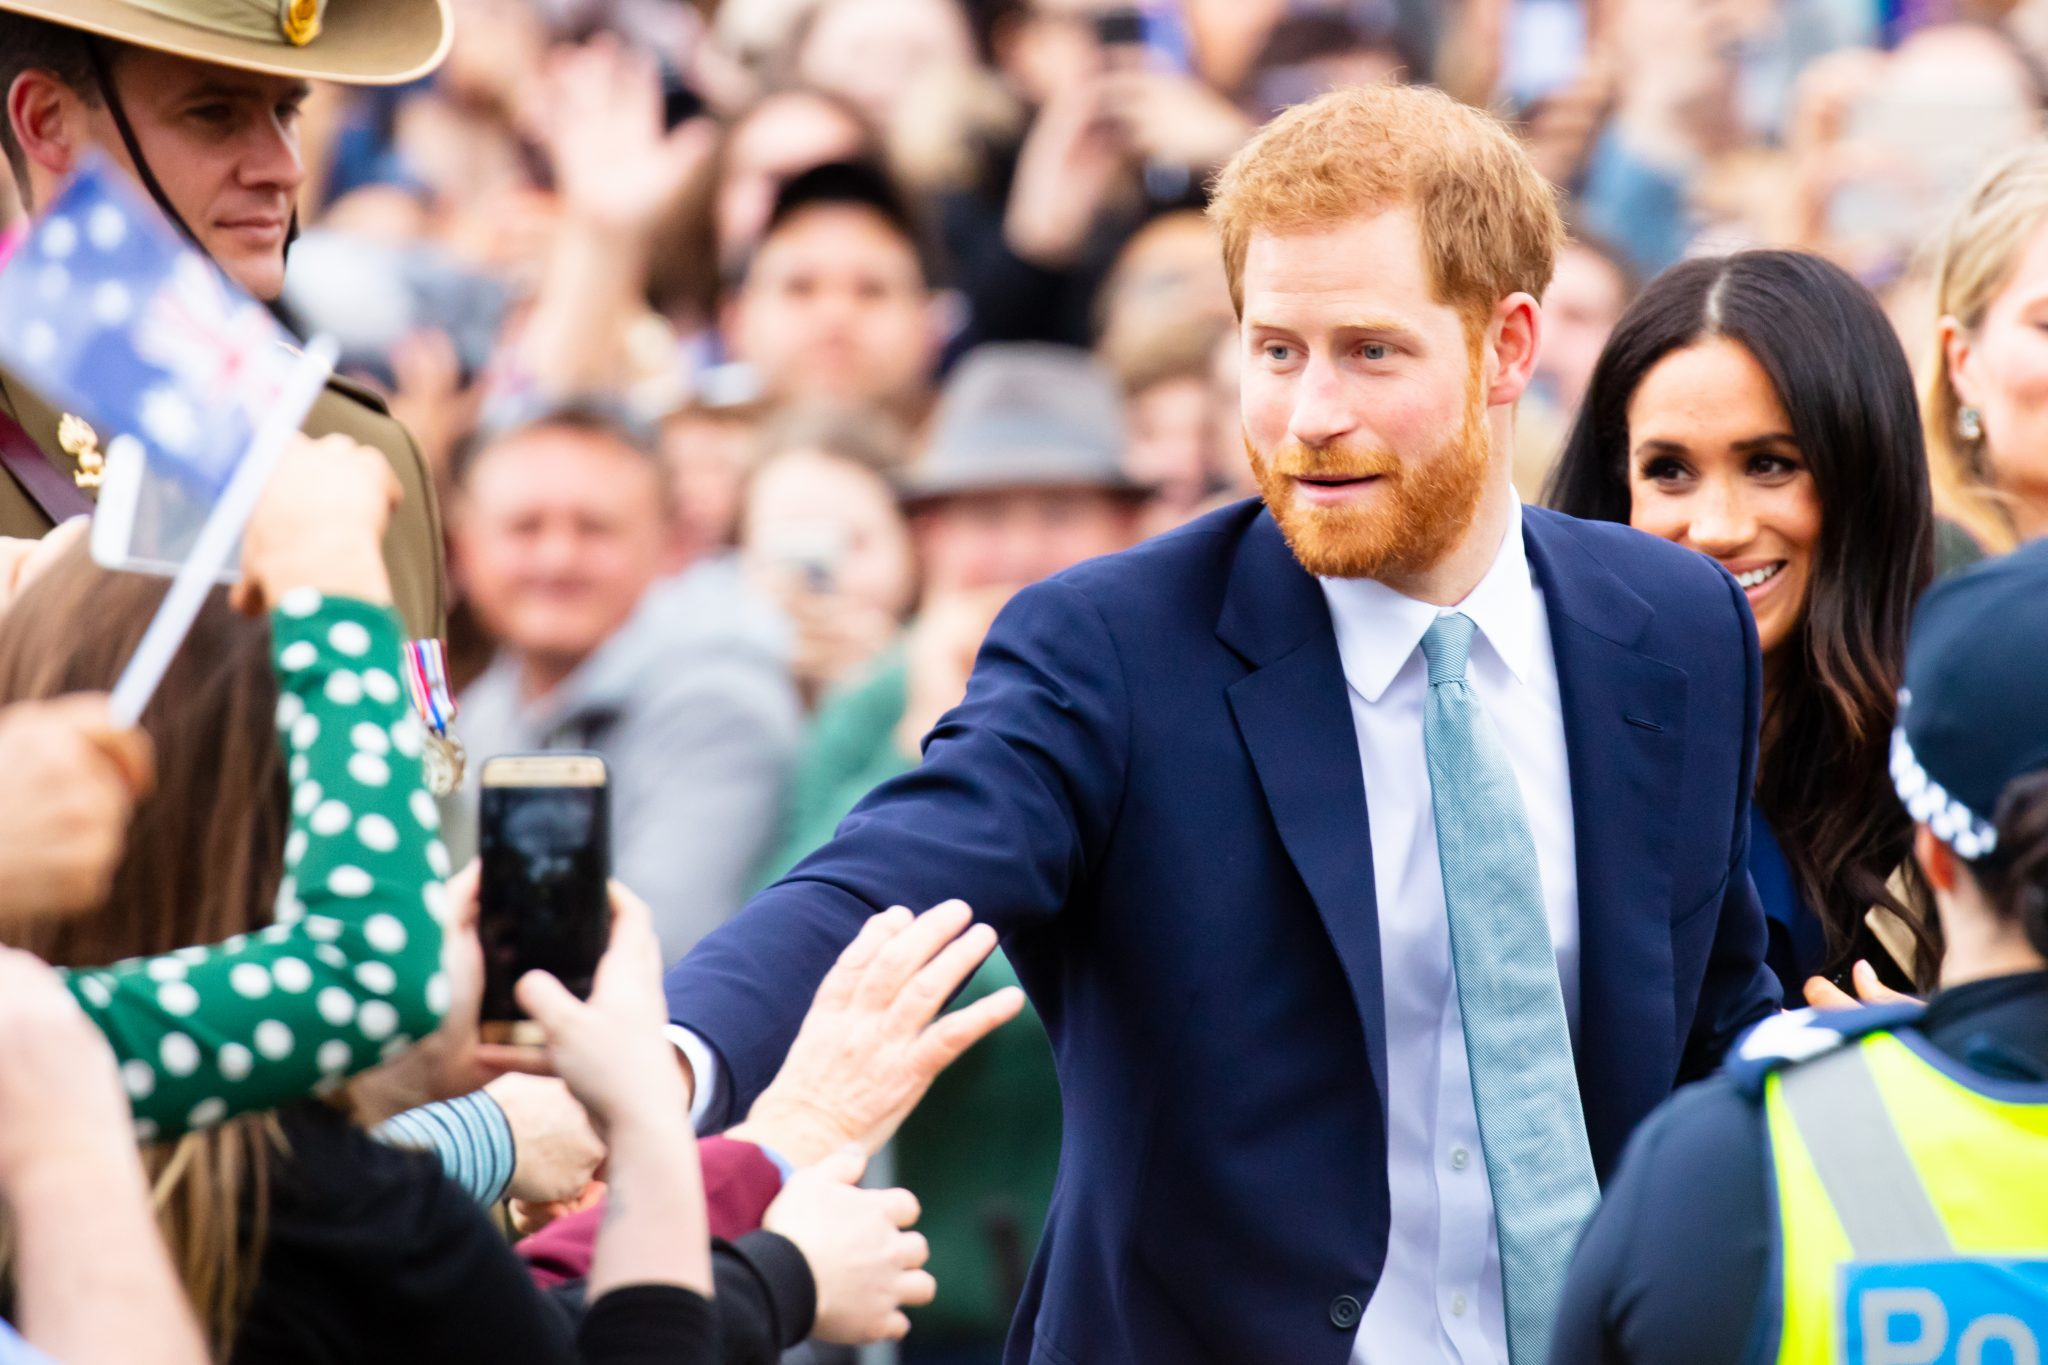 Petition: Prince Harry Sells his Hunting Rifles and Quits Hunting